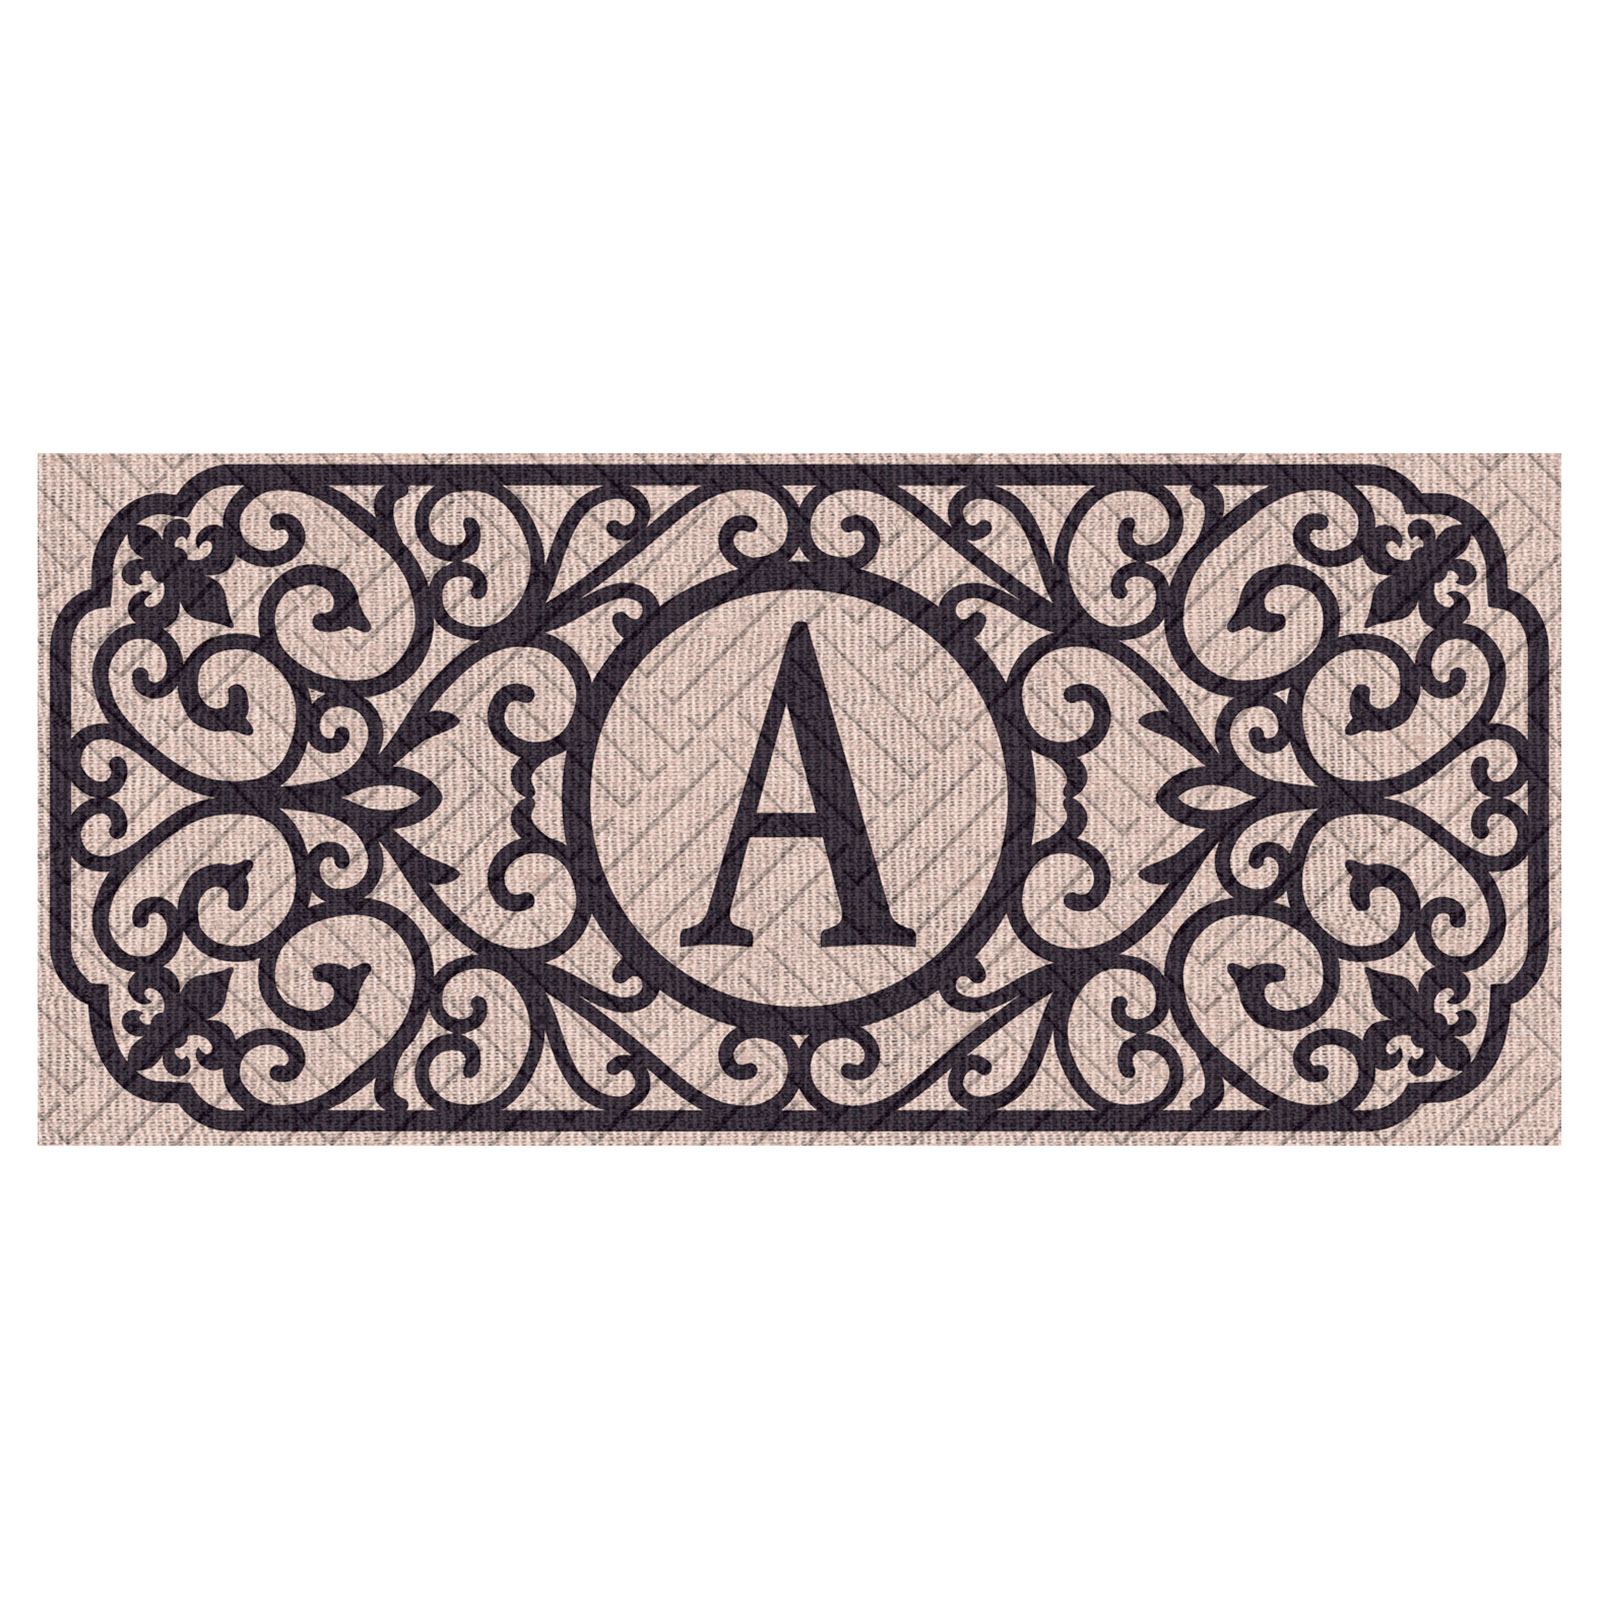 Evergreen Flag Sassafras Filigree Monogram Embossed Switch Mat Insert